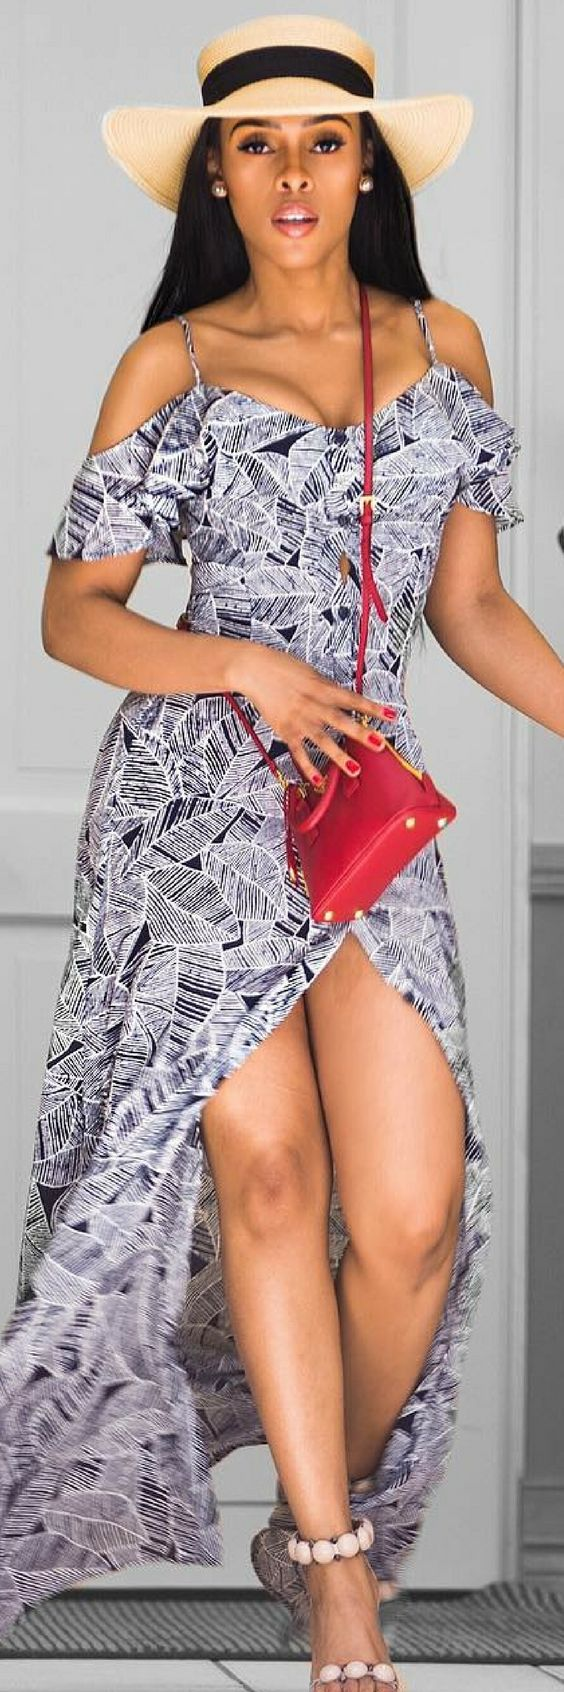 The Good Mood Dress - How To Style By Kefilwe Mabote http://ecstasymodels.blog/2017/10/16/good-mood-dress-style-kefilwe-mabote/